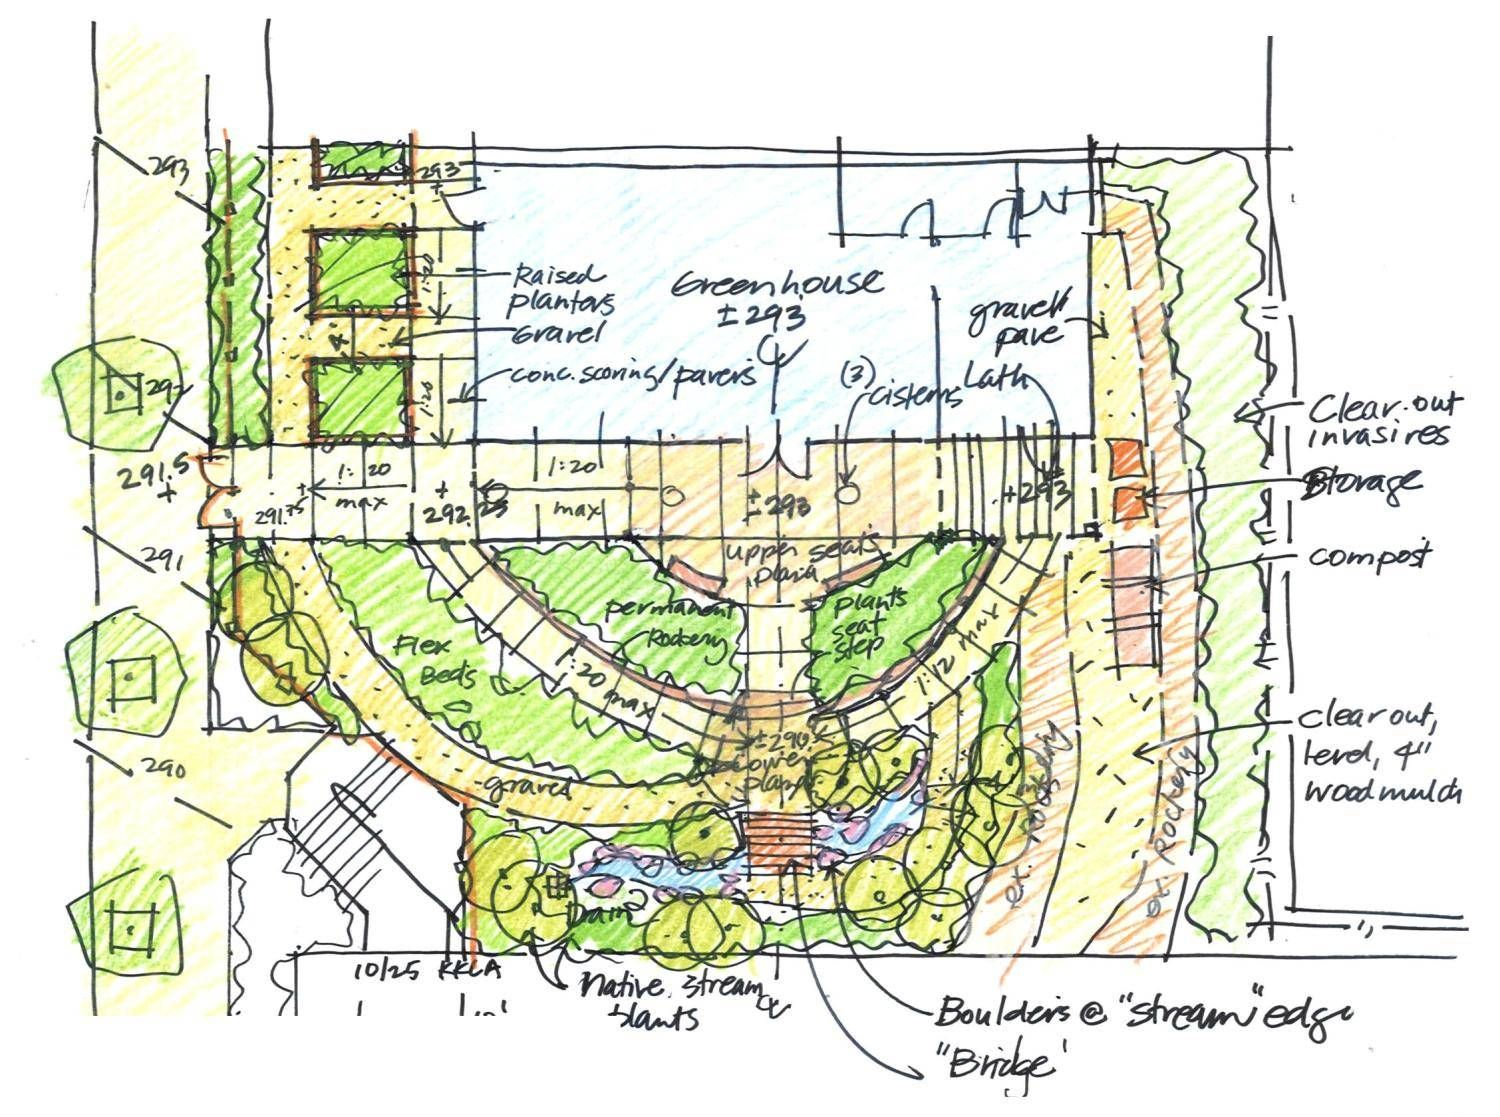 Trend landscape plan drawing 5 how to draw architectural for Architecture plan drawing